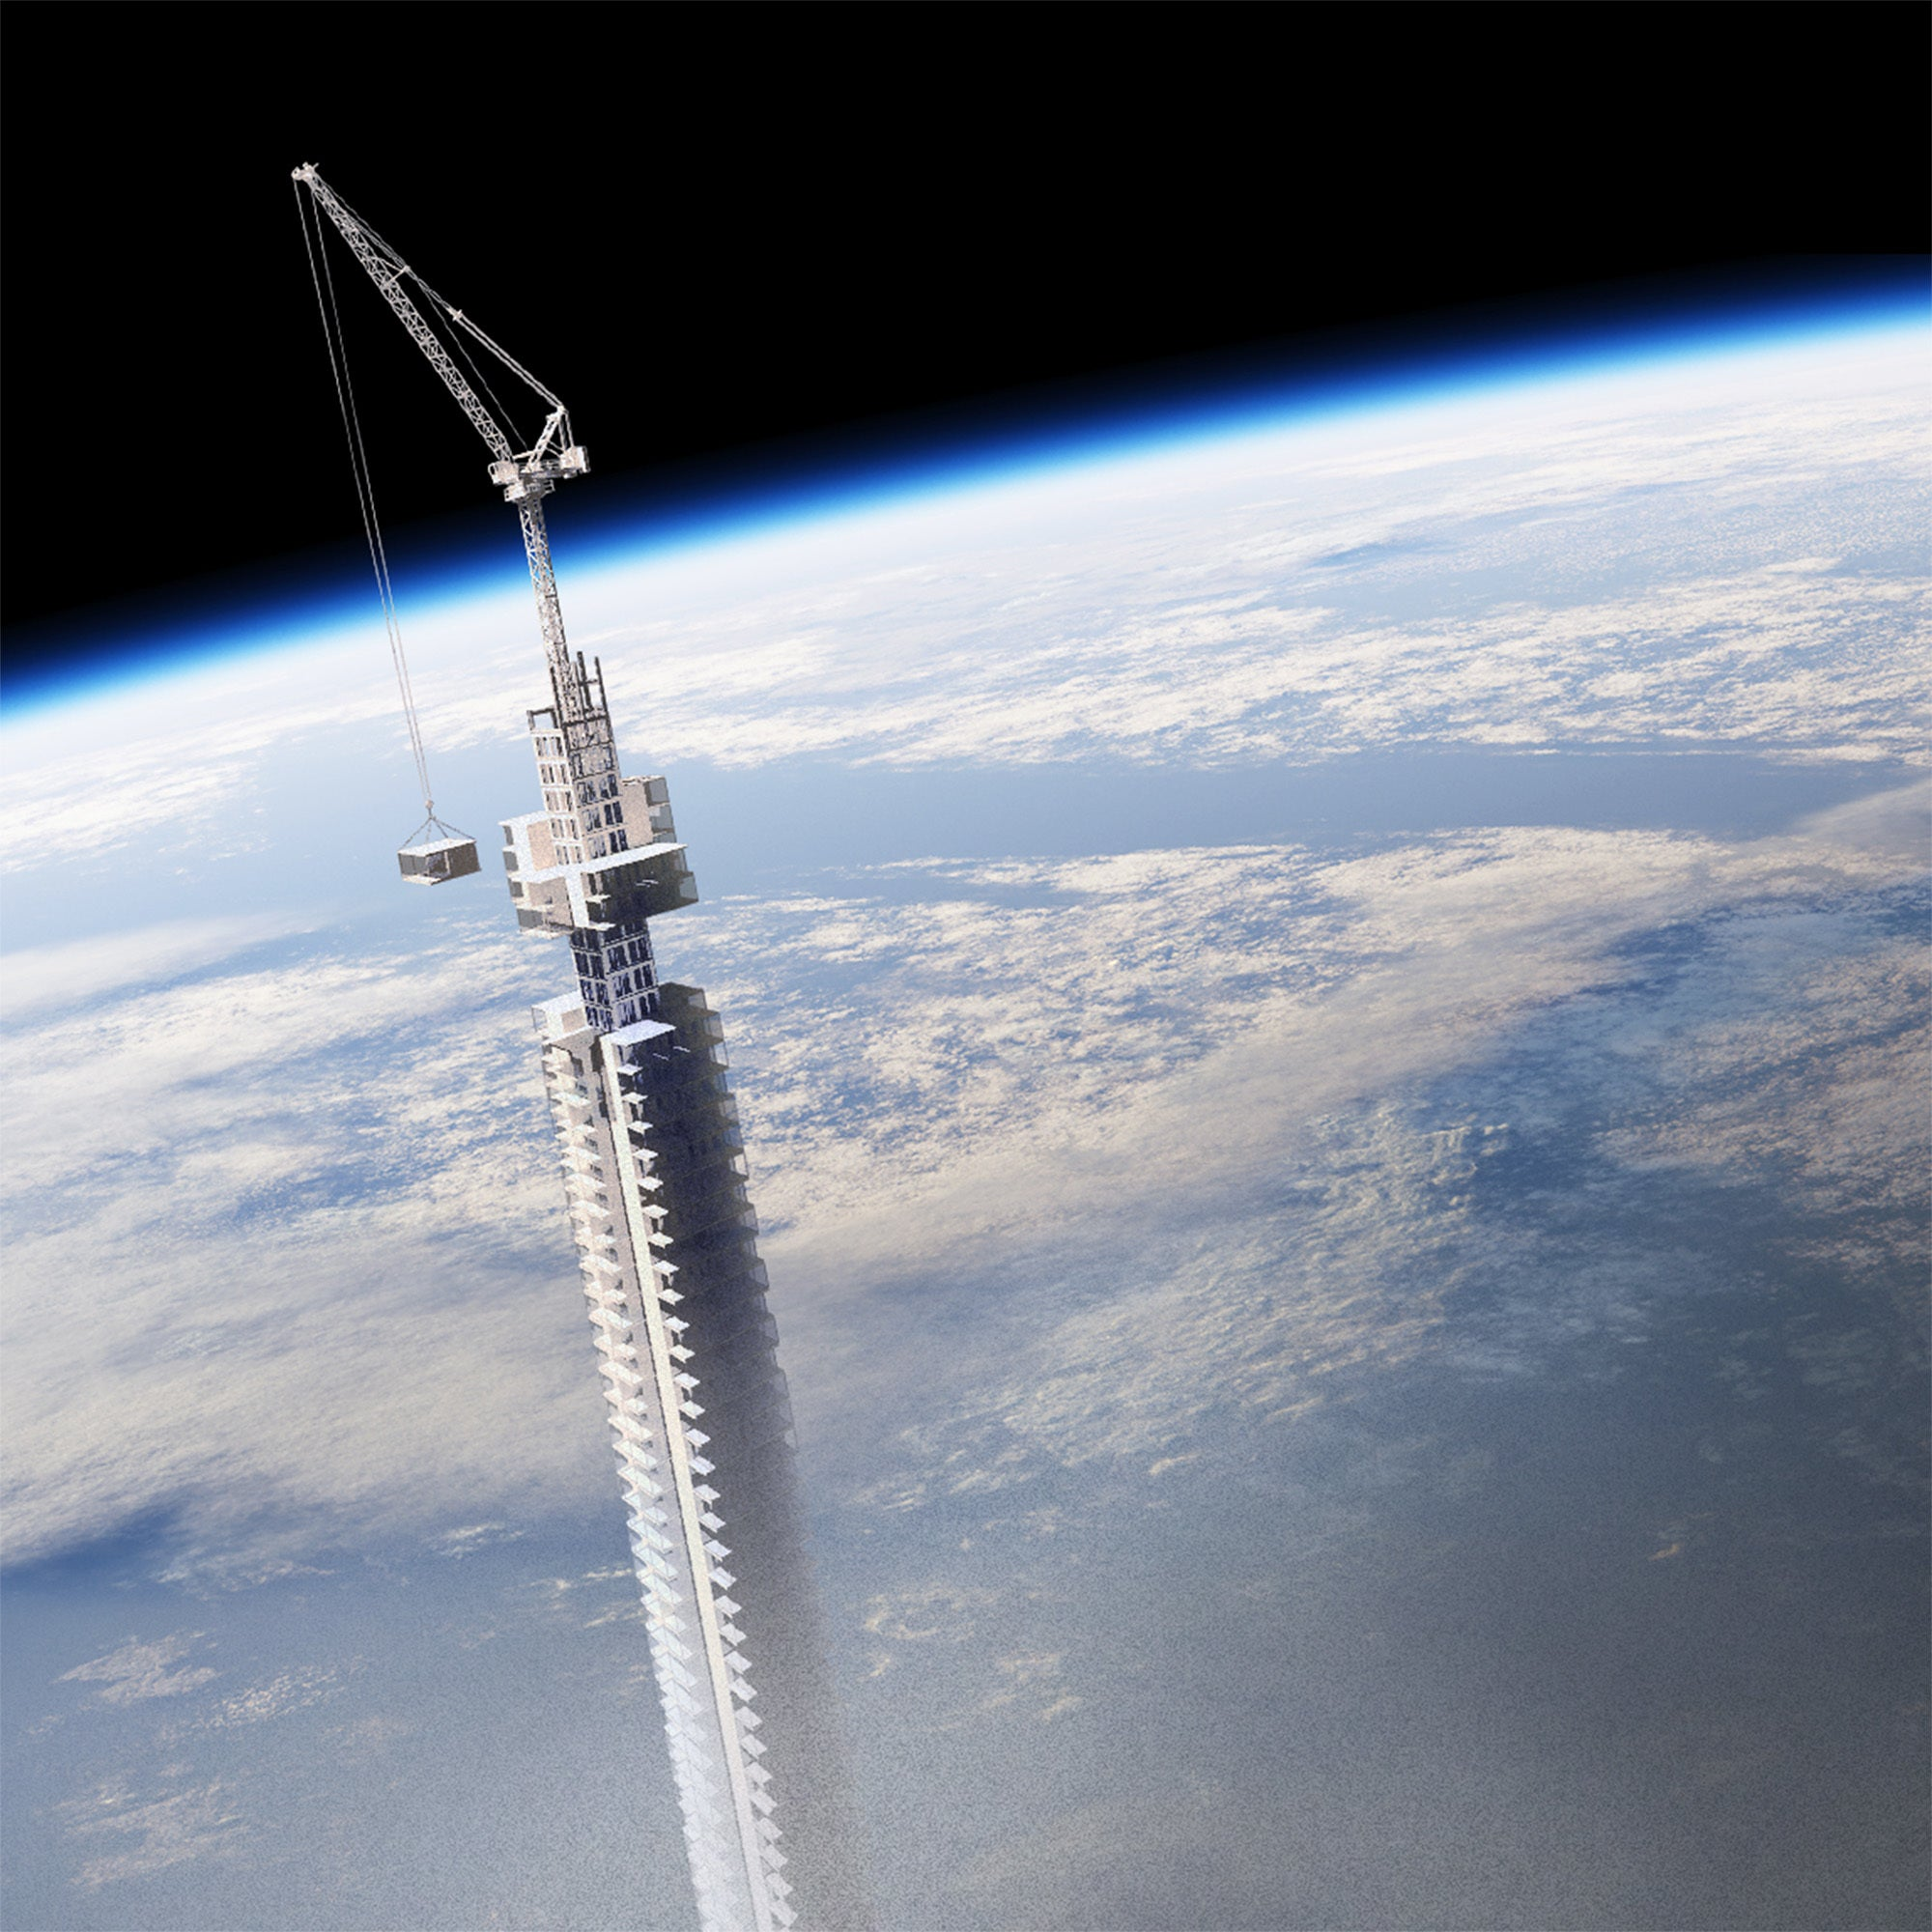 This building hanging from an asteroid is absurd—but let's take it seriously for a second